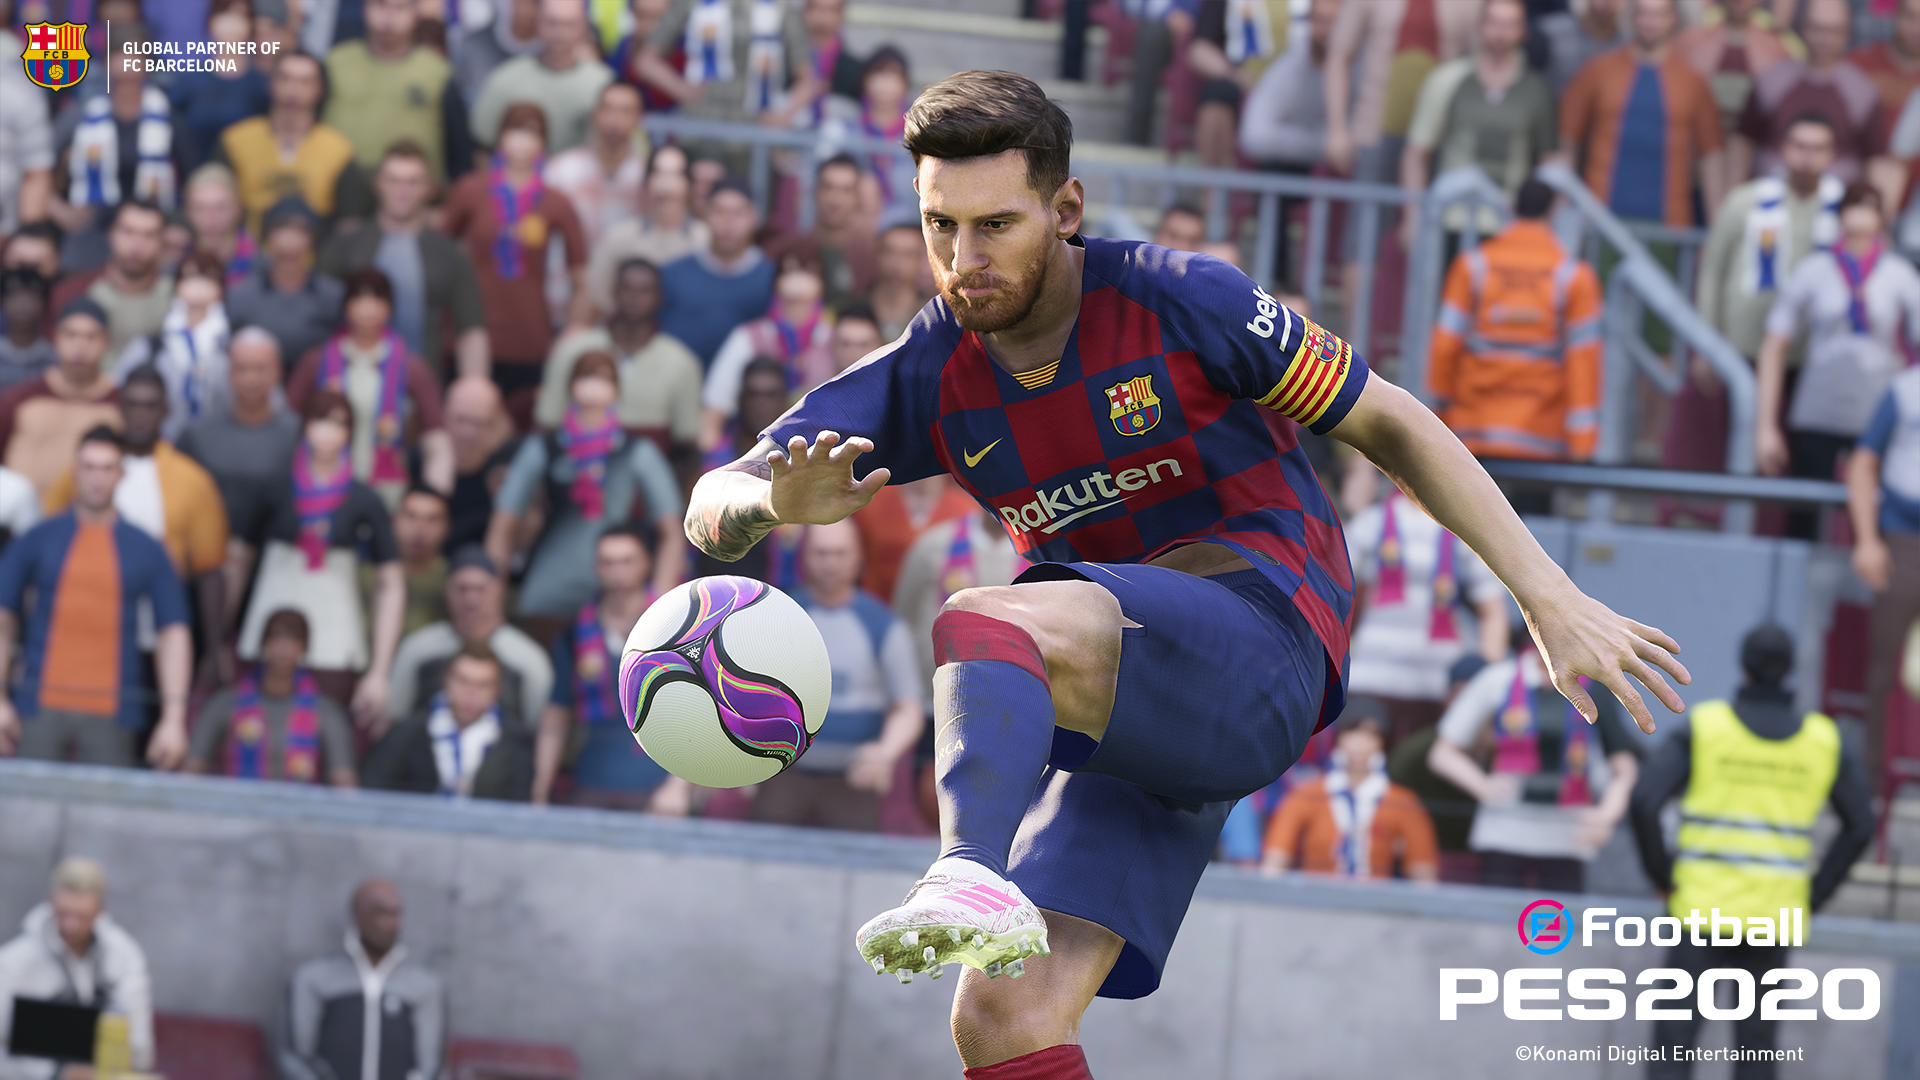 eFootball PES 2020 hands-on proves mixed news for die-hard fans of